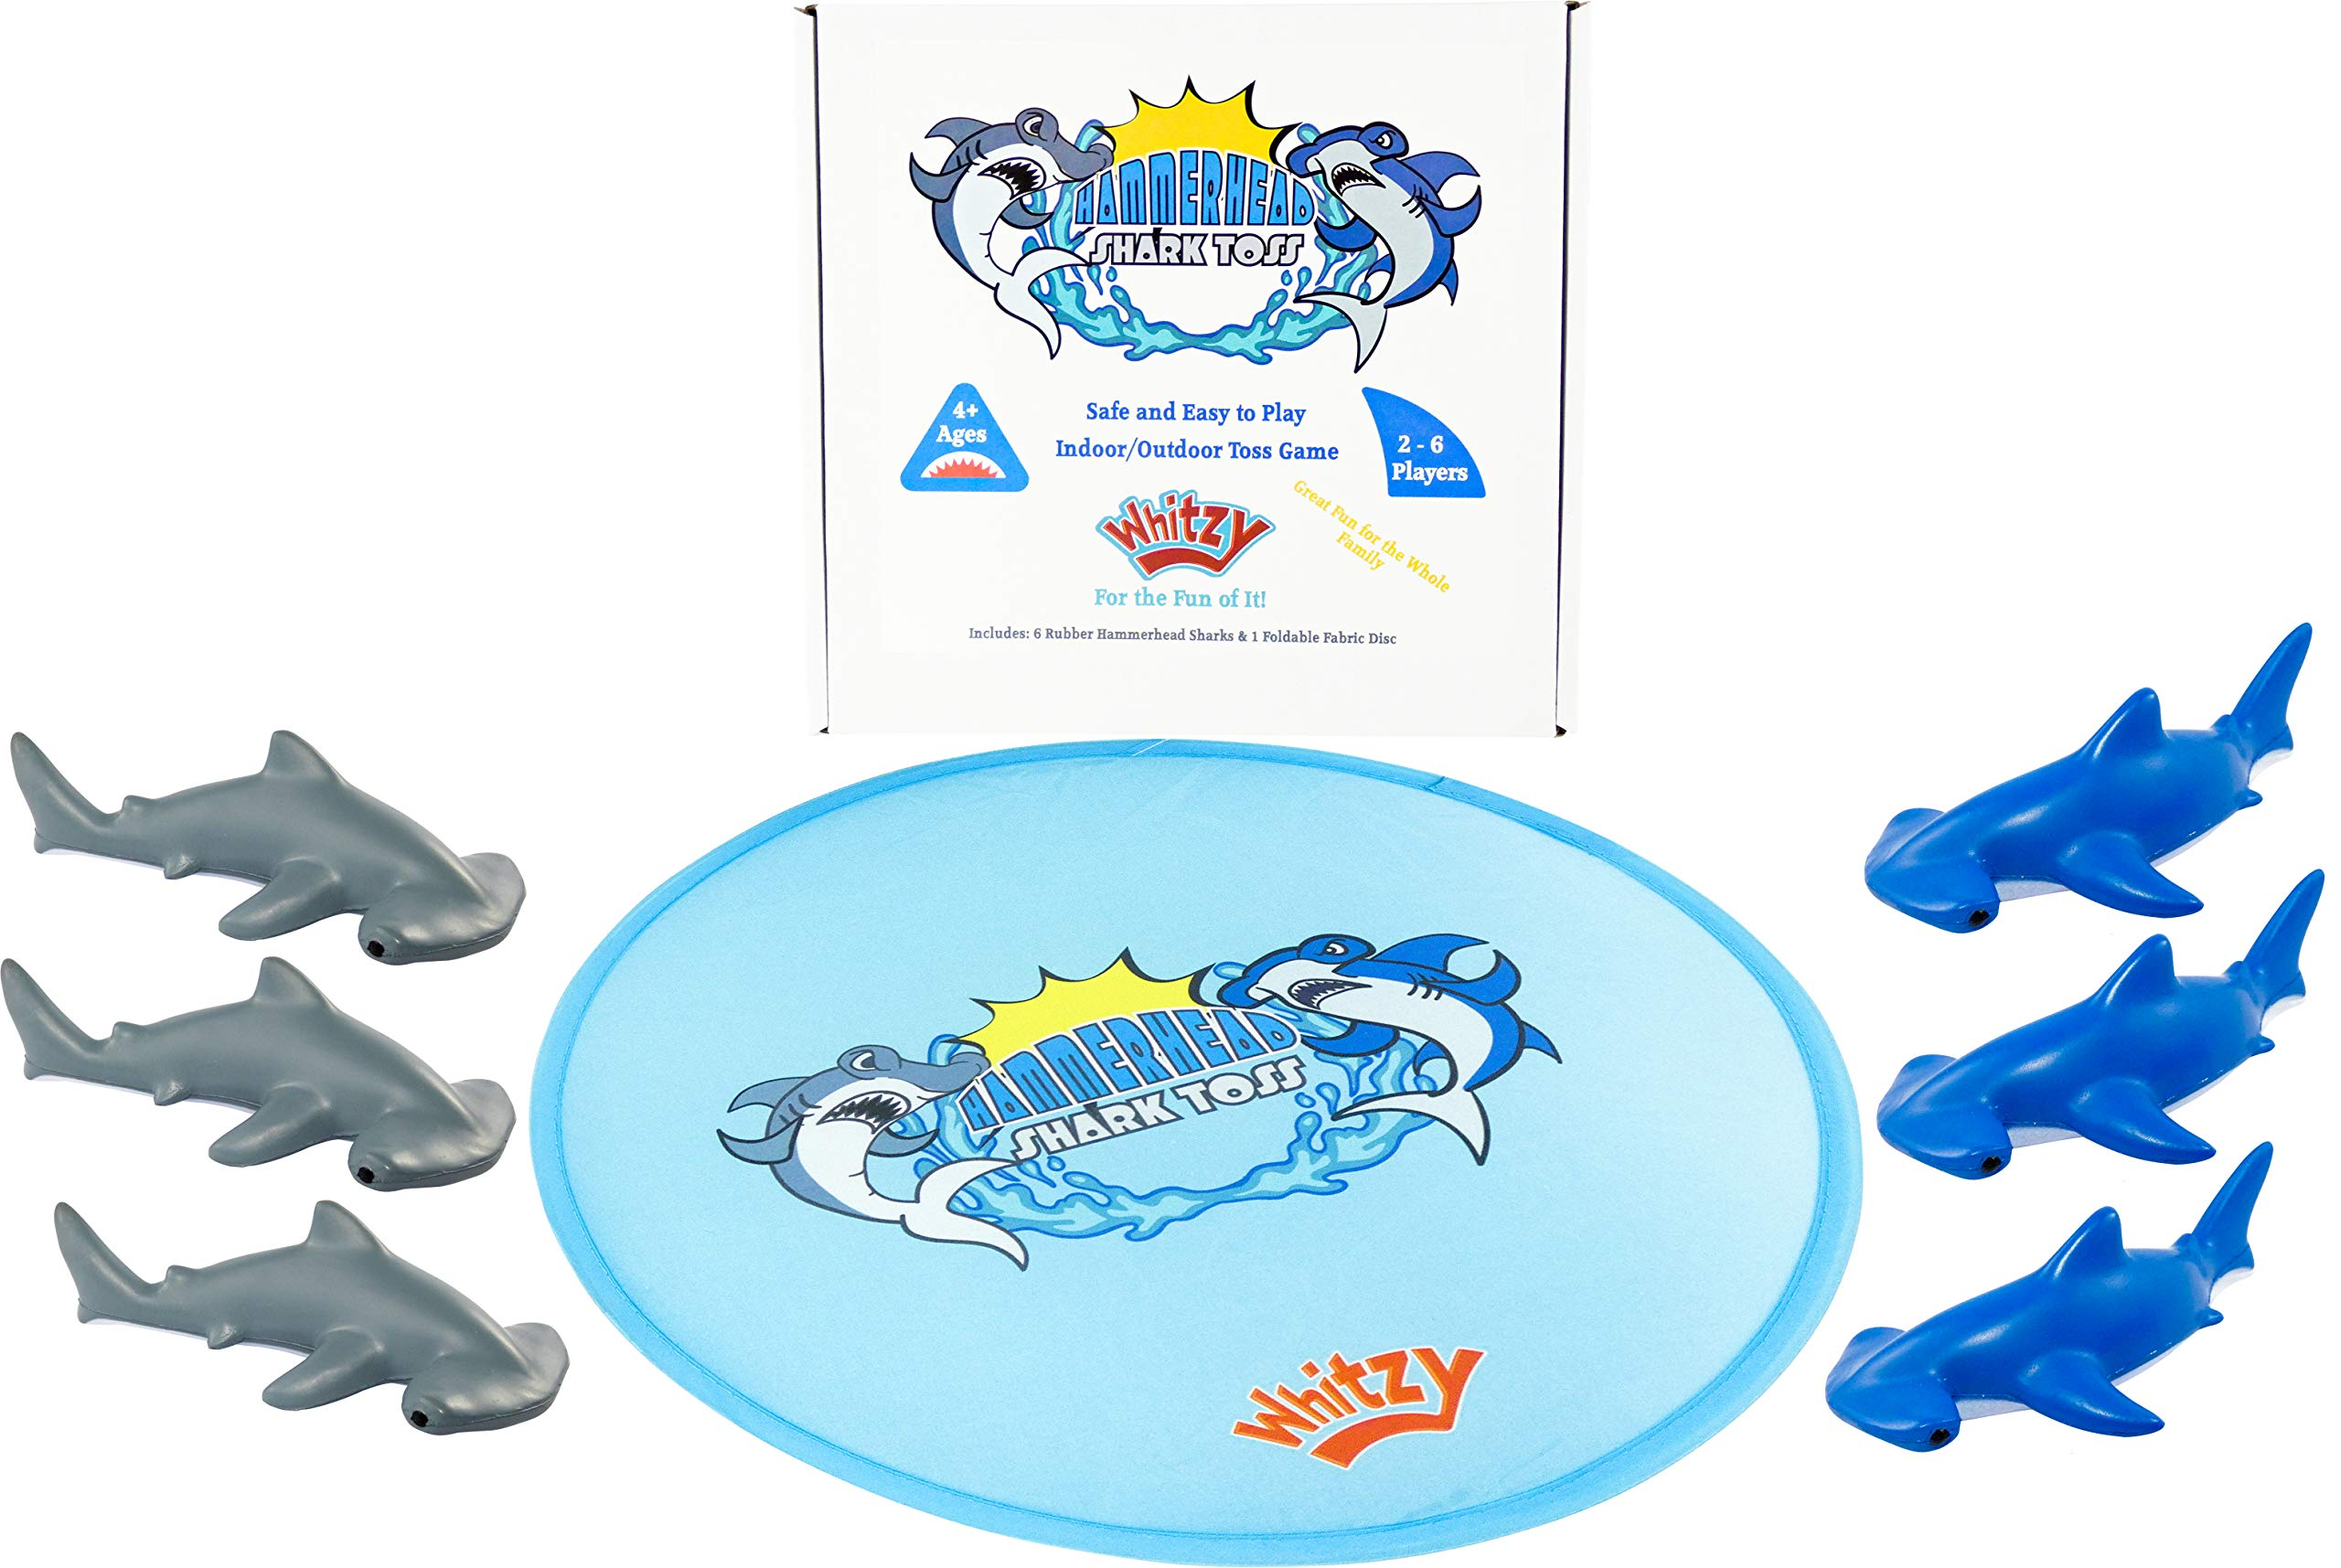 Whitzy Hammerhead Shark Toss Game - Indoor/Outdoor Safe Family Fun for All Ages Kids & Adults. Original Set of 6 Foam Rubber Sharks & 1 Target Ring for Lawn, Beach, Backyard, Camping, Tailgating